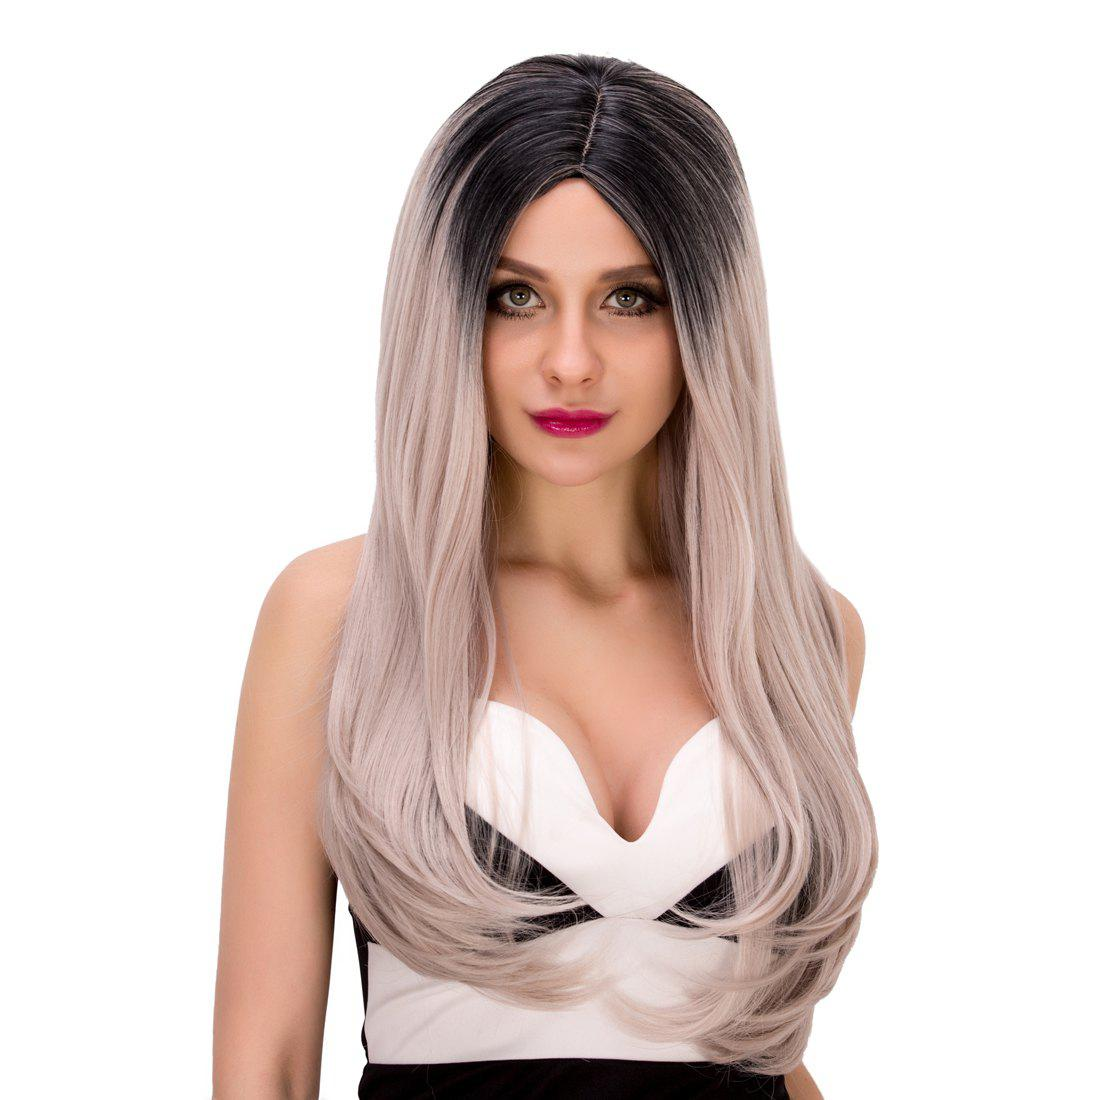 Fashion Women's Long Tail Adduction Centre Parting Mixed Color Synthetic Hair Wig